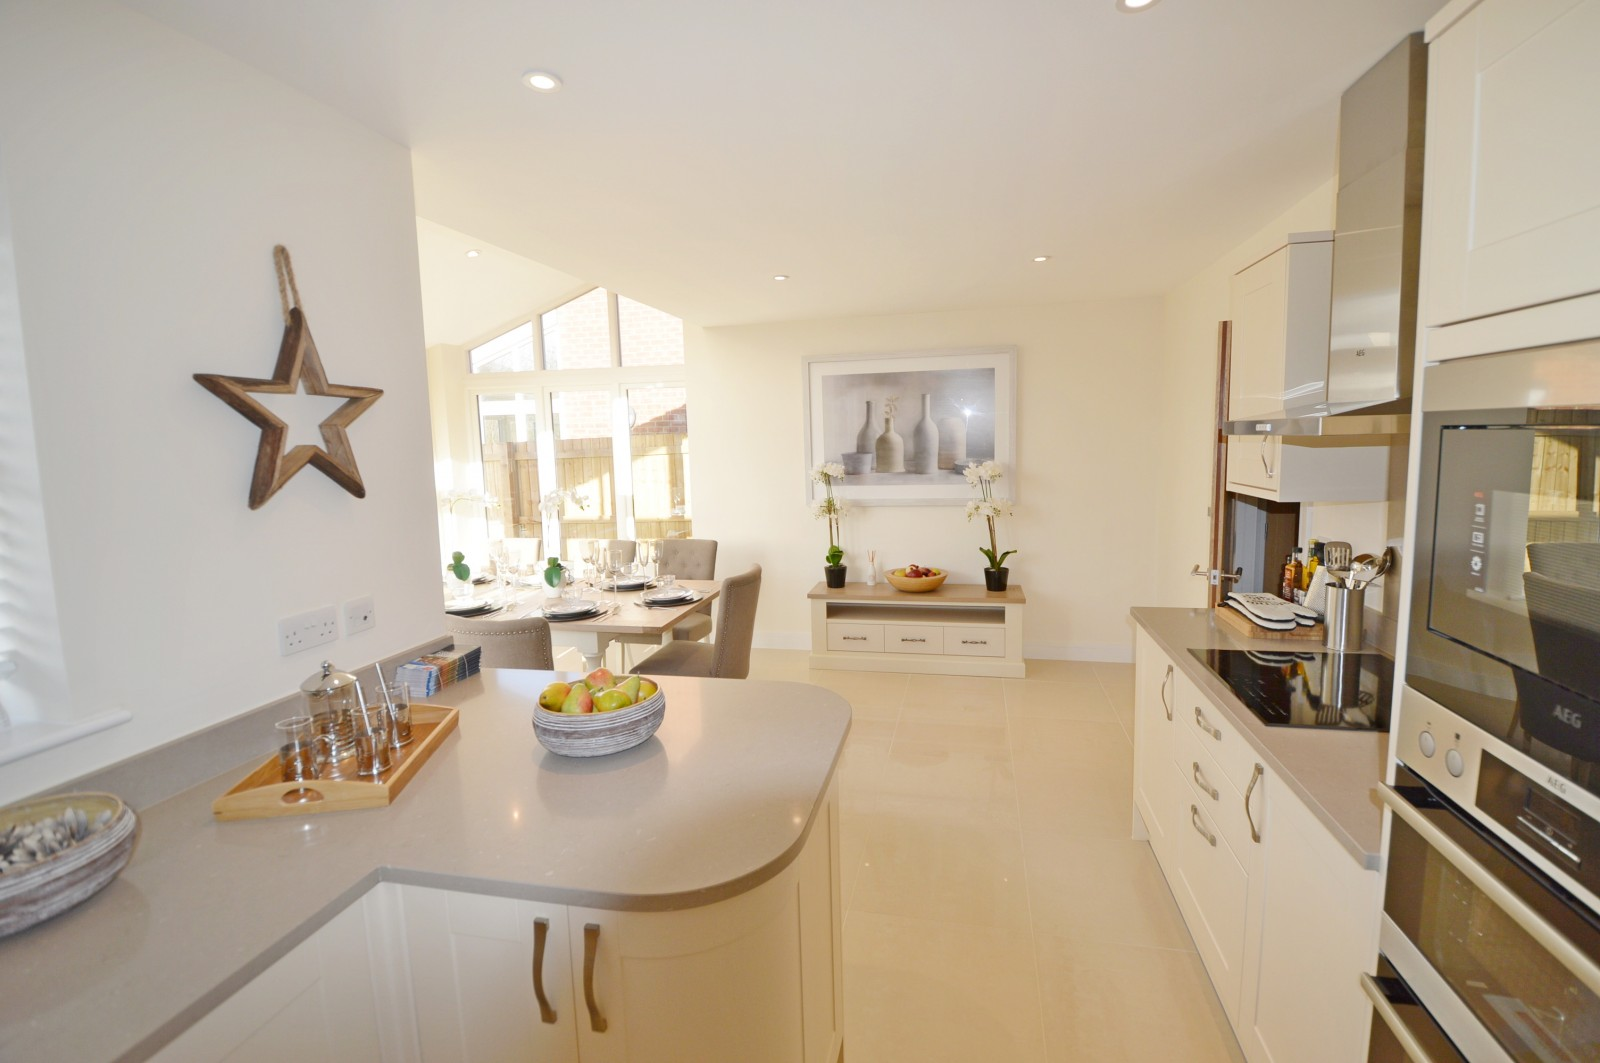 Kitchen 2 Property to let in Ropley